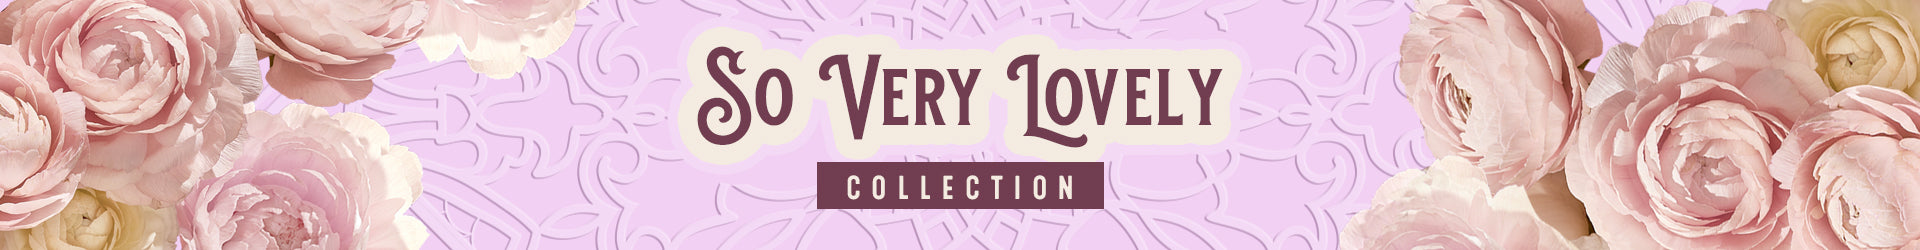 So Very Lovely Collection